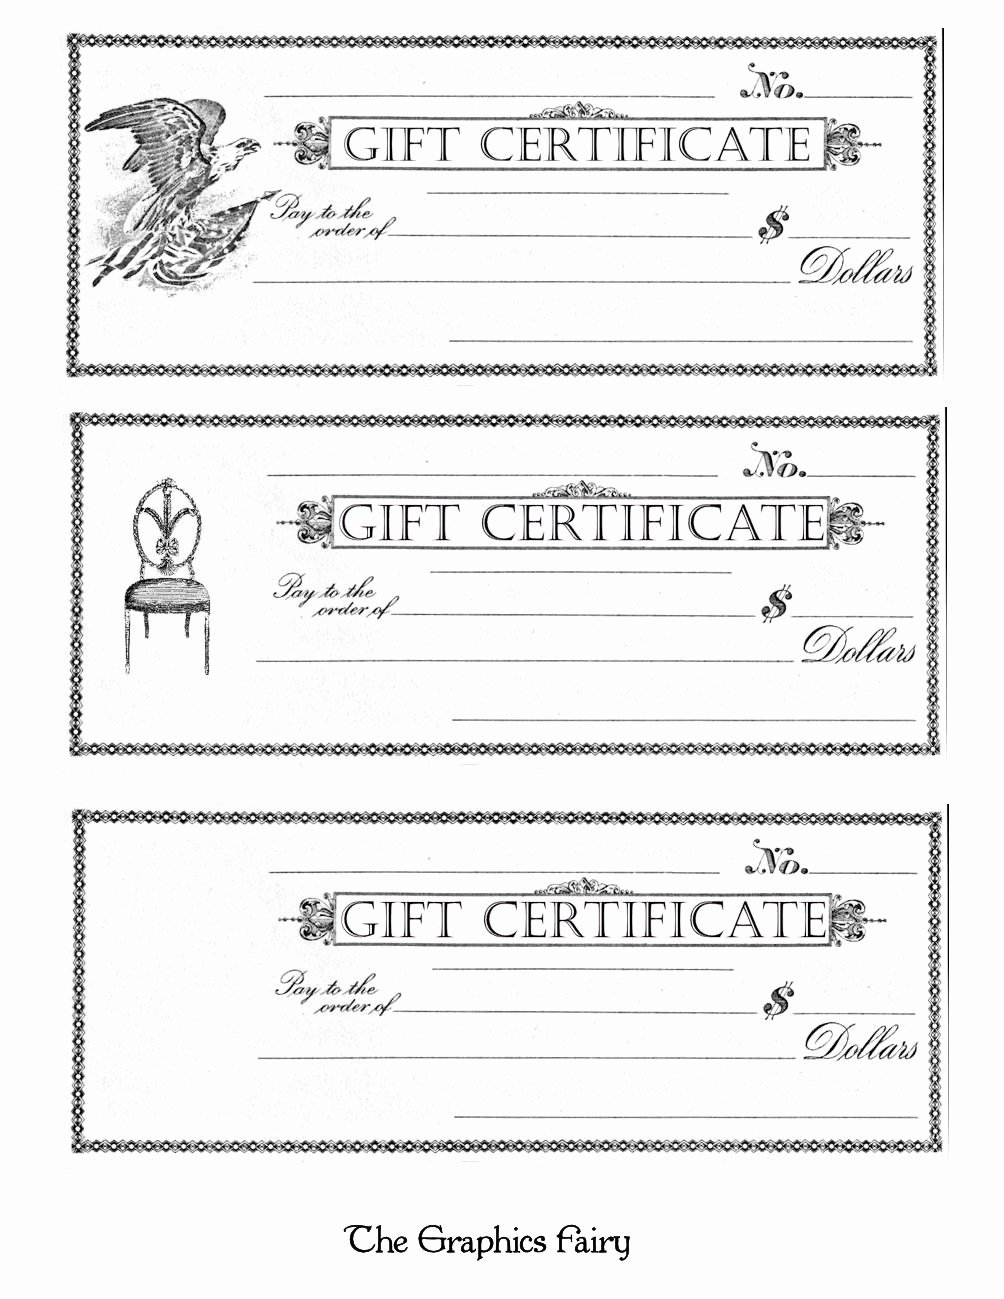 Blank Certificates to Print Elegant Free Printable Gift Certificates the Graphics Fairy